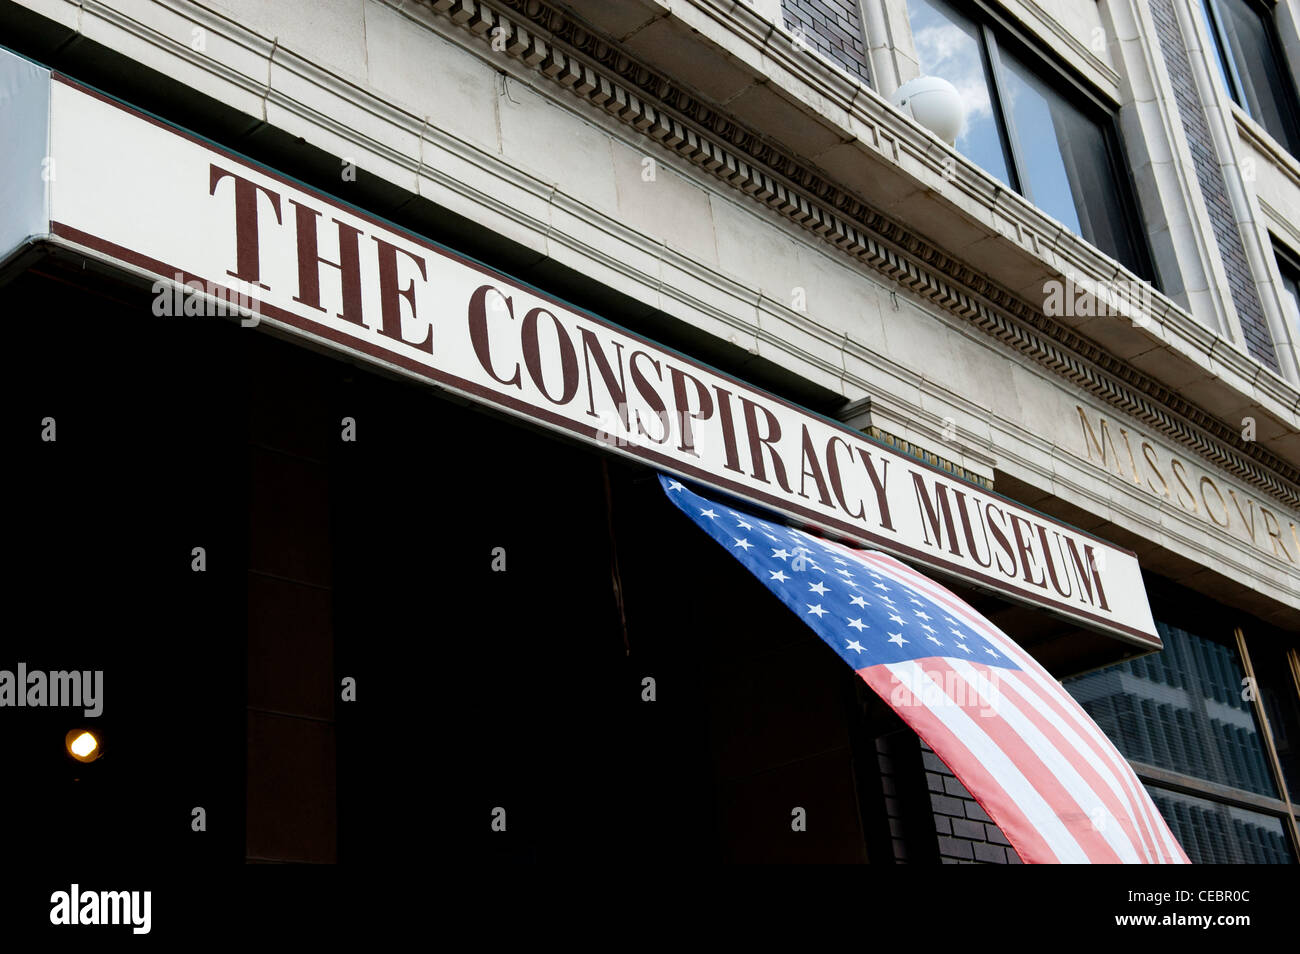 A sign for The Conspiracy Museum in Dallas, Texas - Stock Image